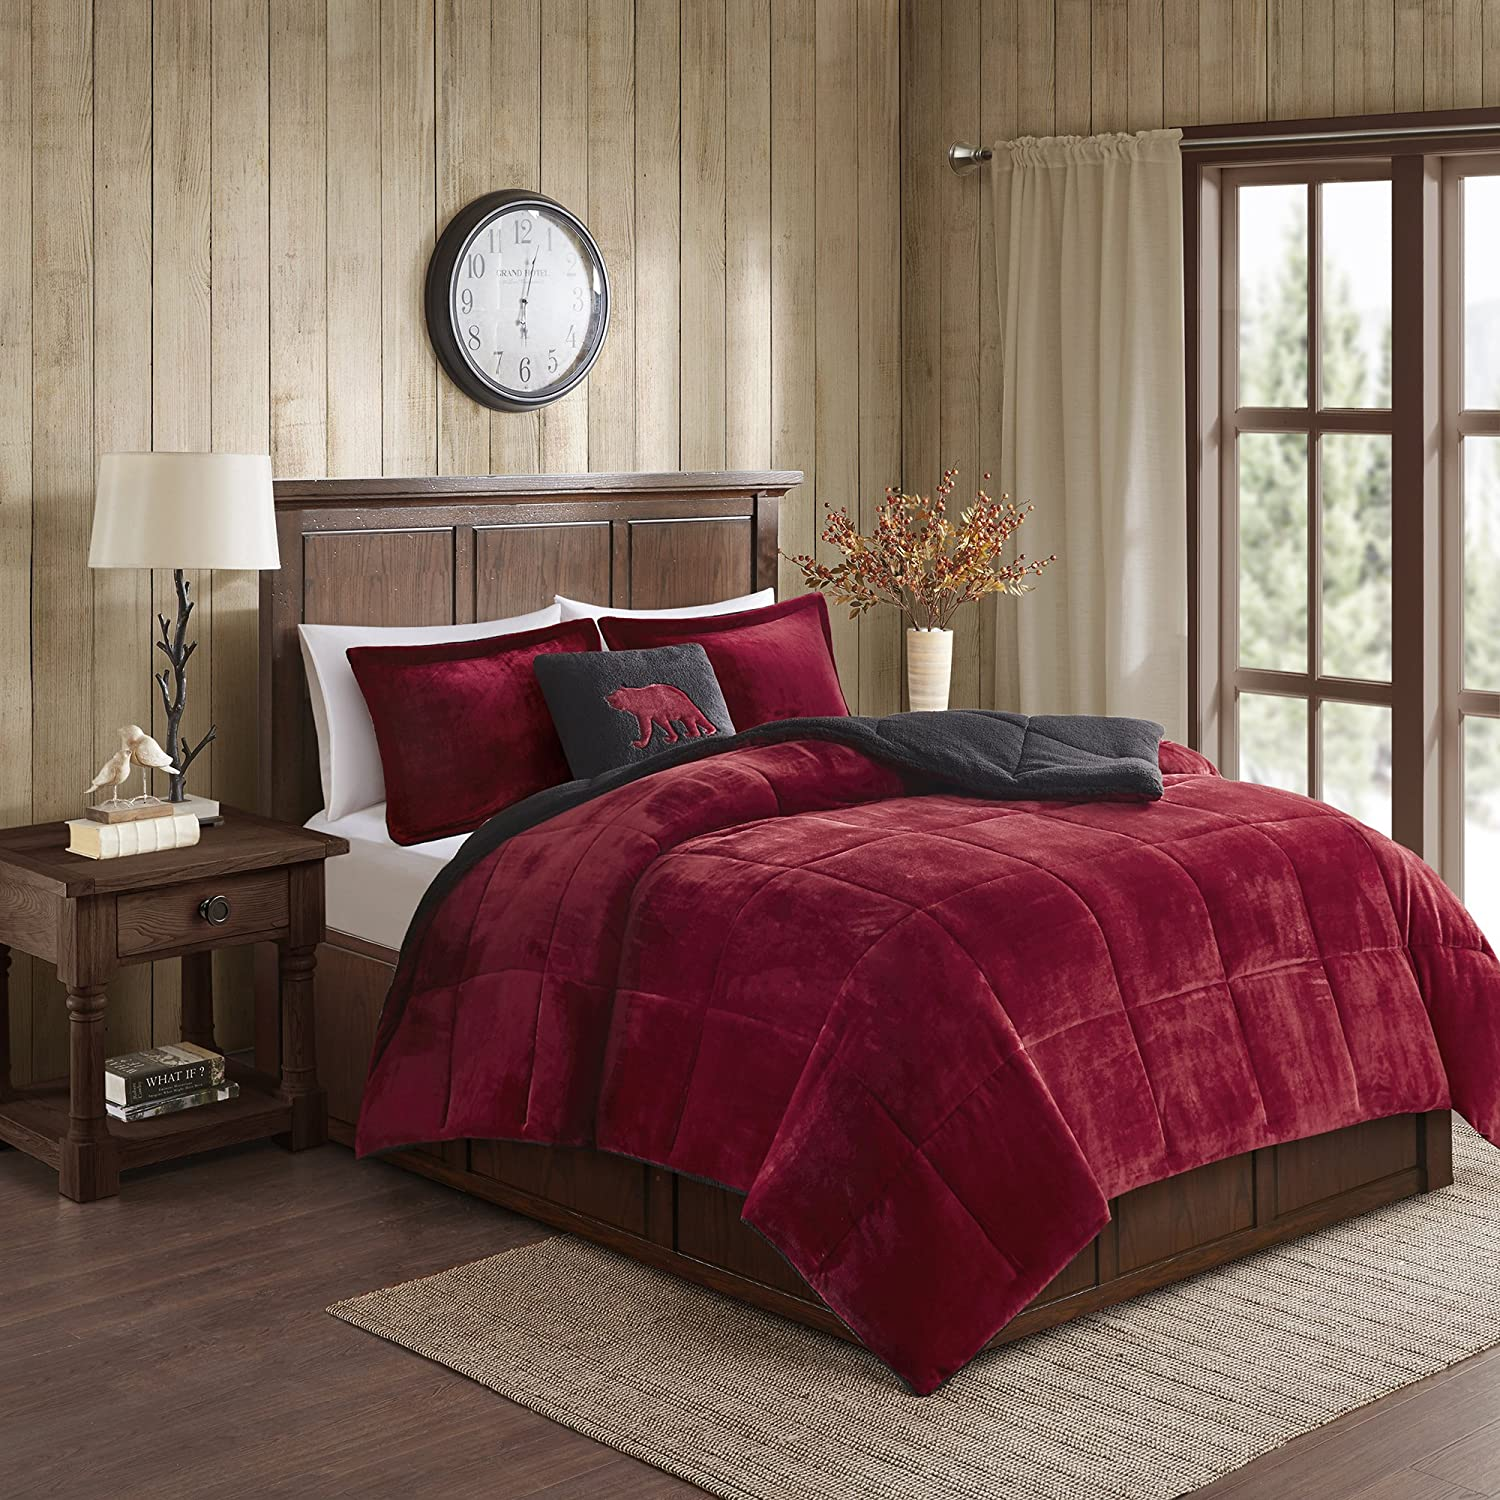 Woolrich Alton Ultra Soft Plush to Sherpa Berber Down Alternative Cold Weather Winter Warm Comforter Set Bedding, Full/Queen, Red/Black